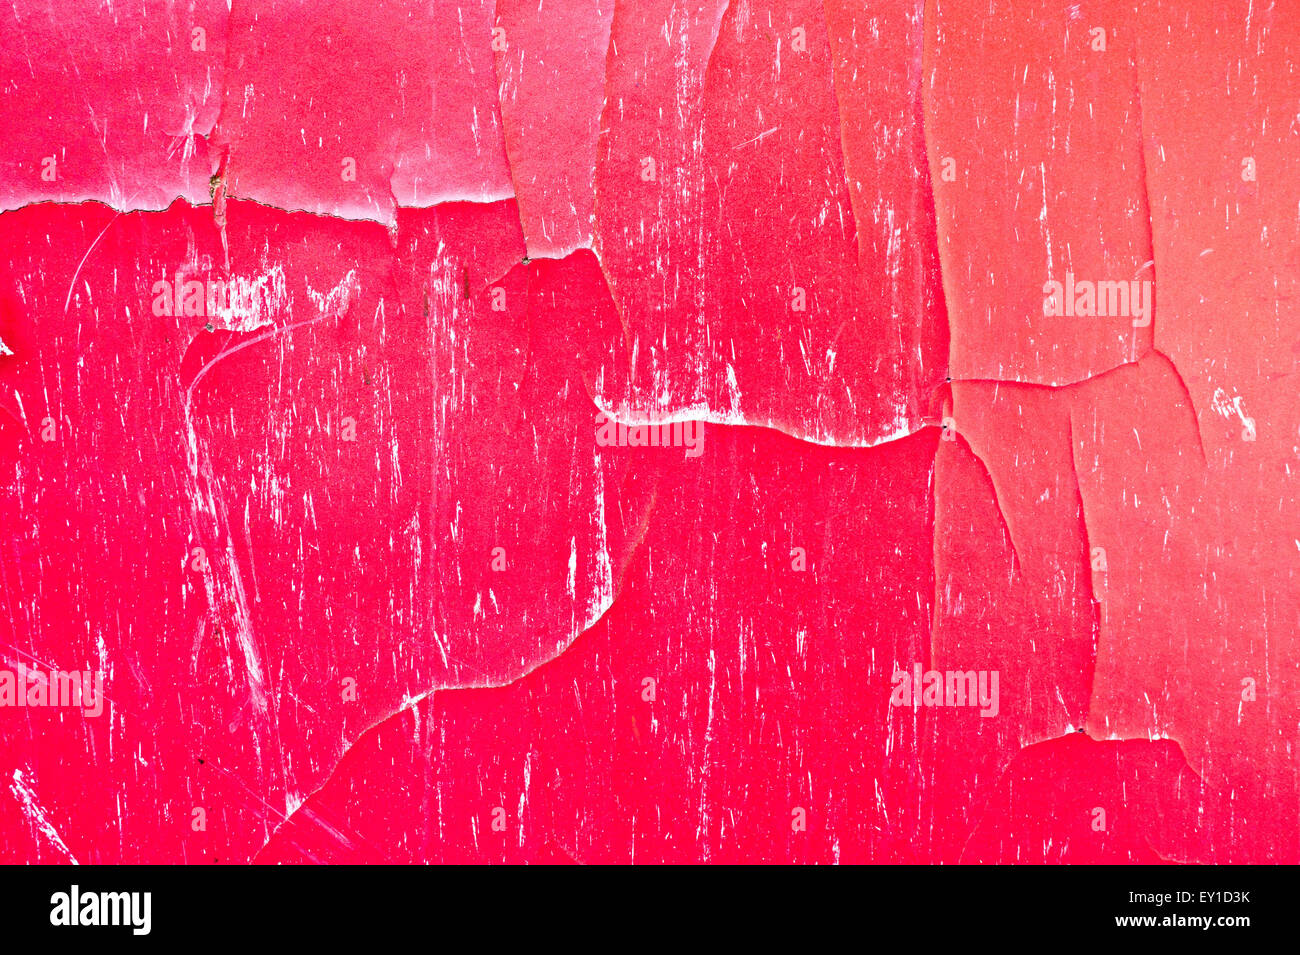 A cracked red wooden surface as a background Stock Photo